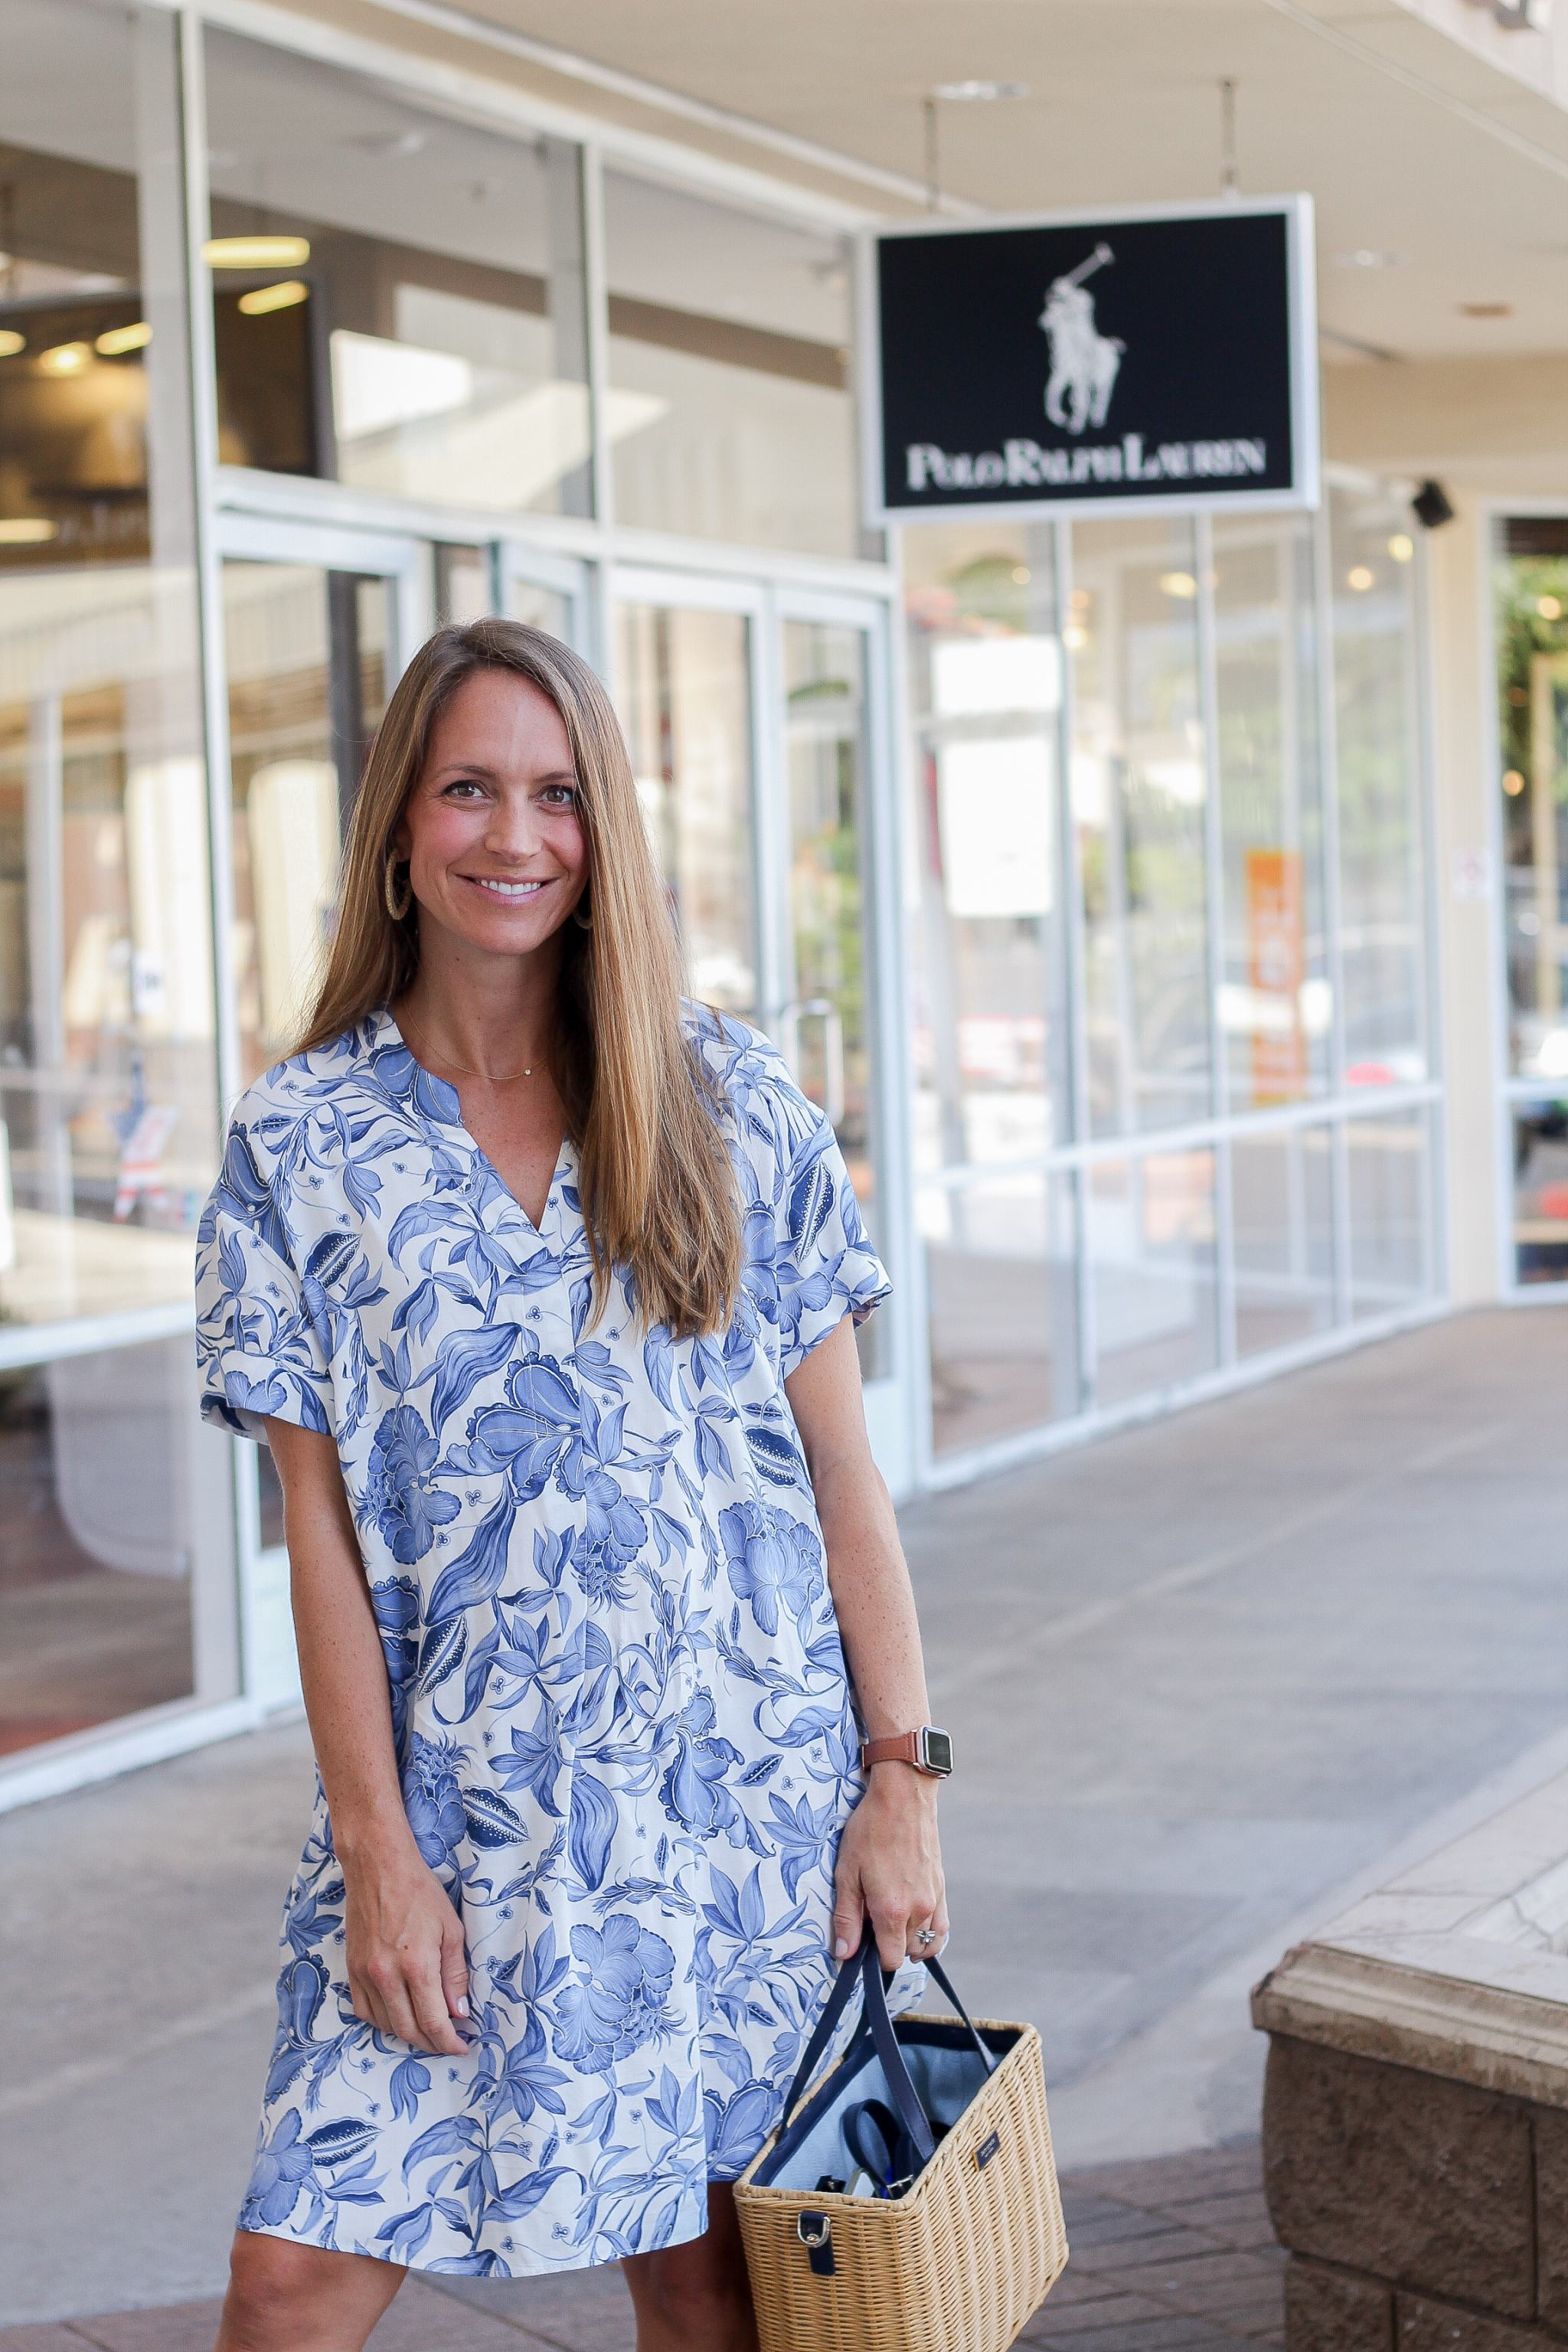 shopping at Waikele Premium Outlets - Simon Center Outlets - outlet mall Hawaii - Oahu outlet mall - back to school shopping Hawaii - outlet mall in hawaii - polo ralph lauren outlet hawaii - back to school style - pregnancy style - maternity style - 20 weeks pregnant